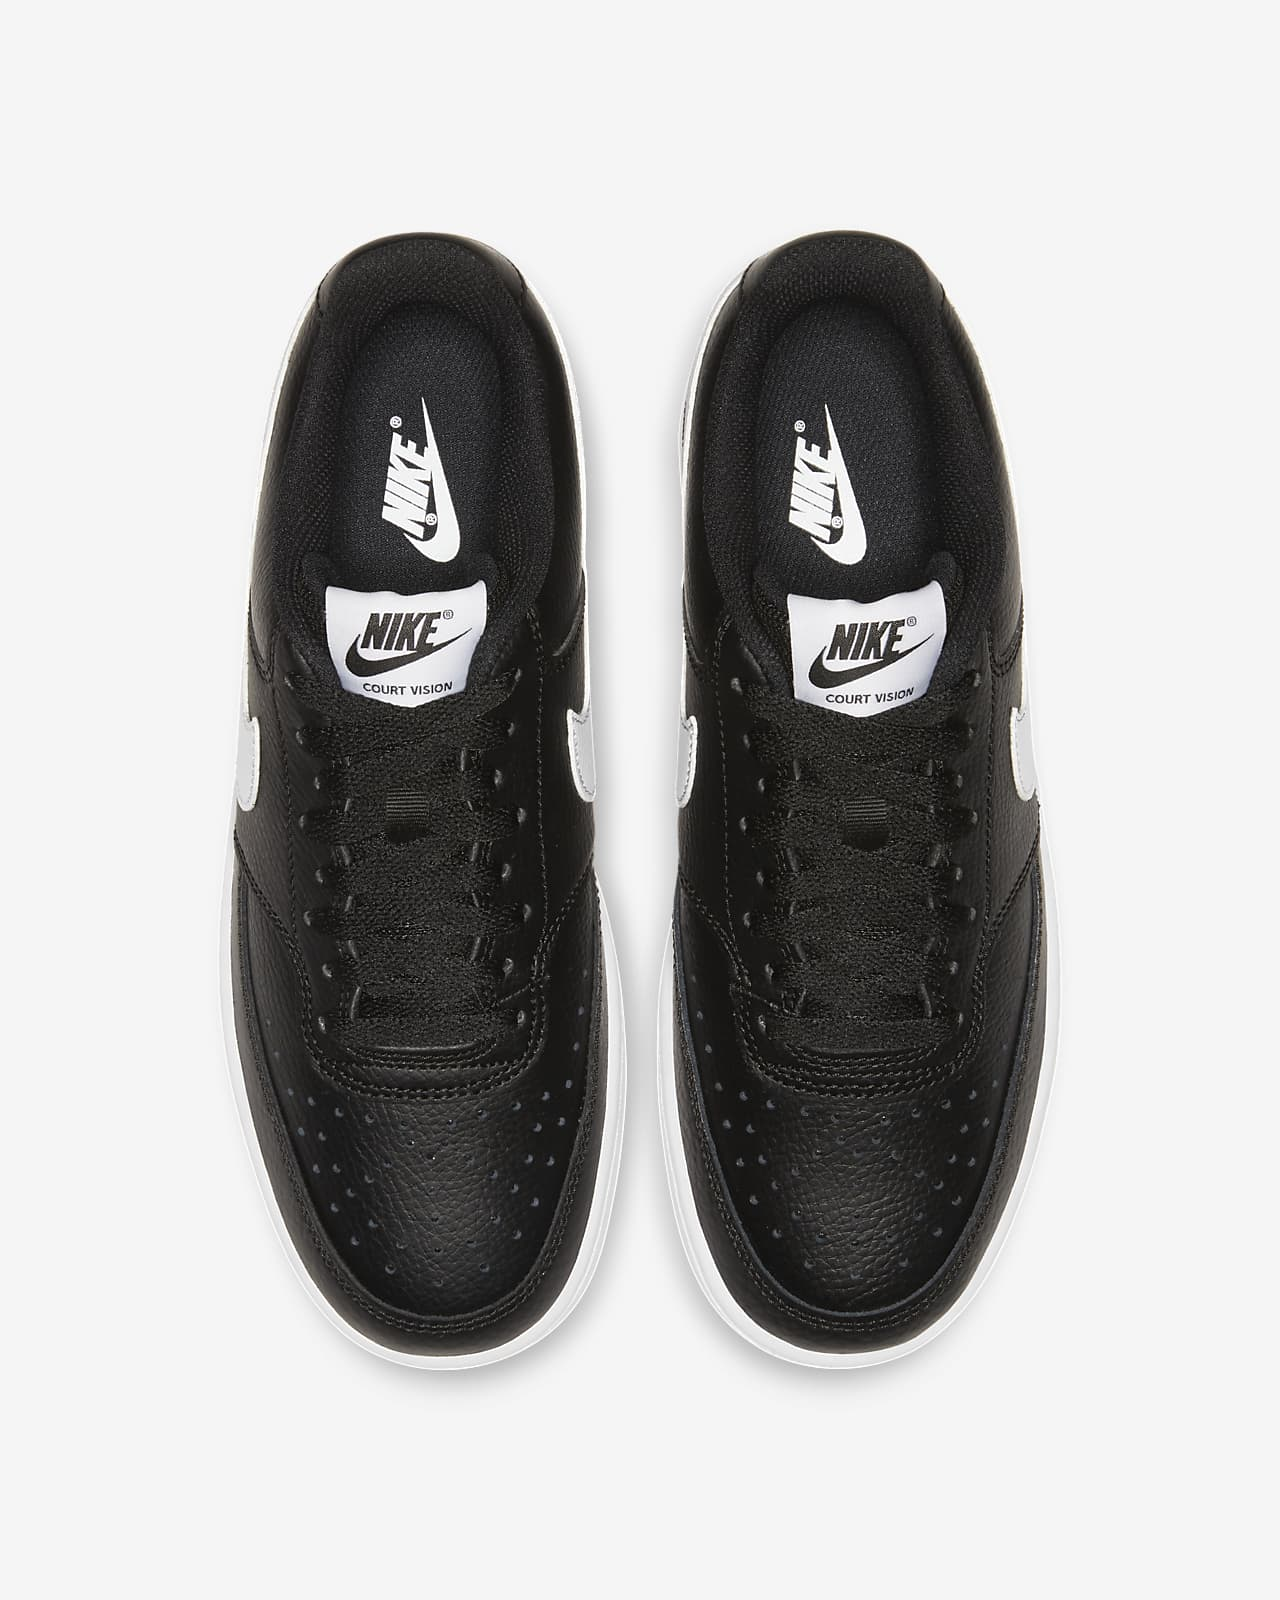 chaussure femme nike cuire